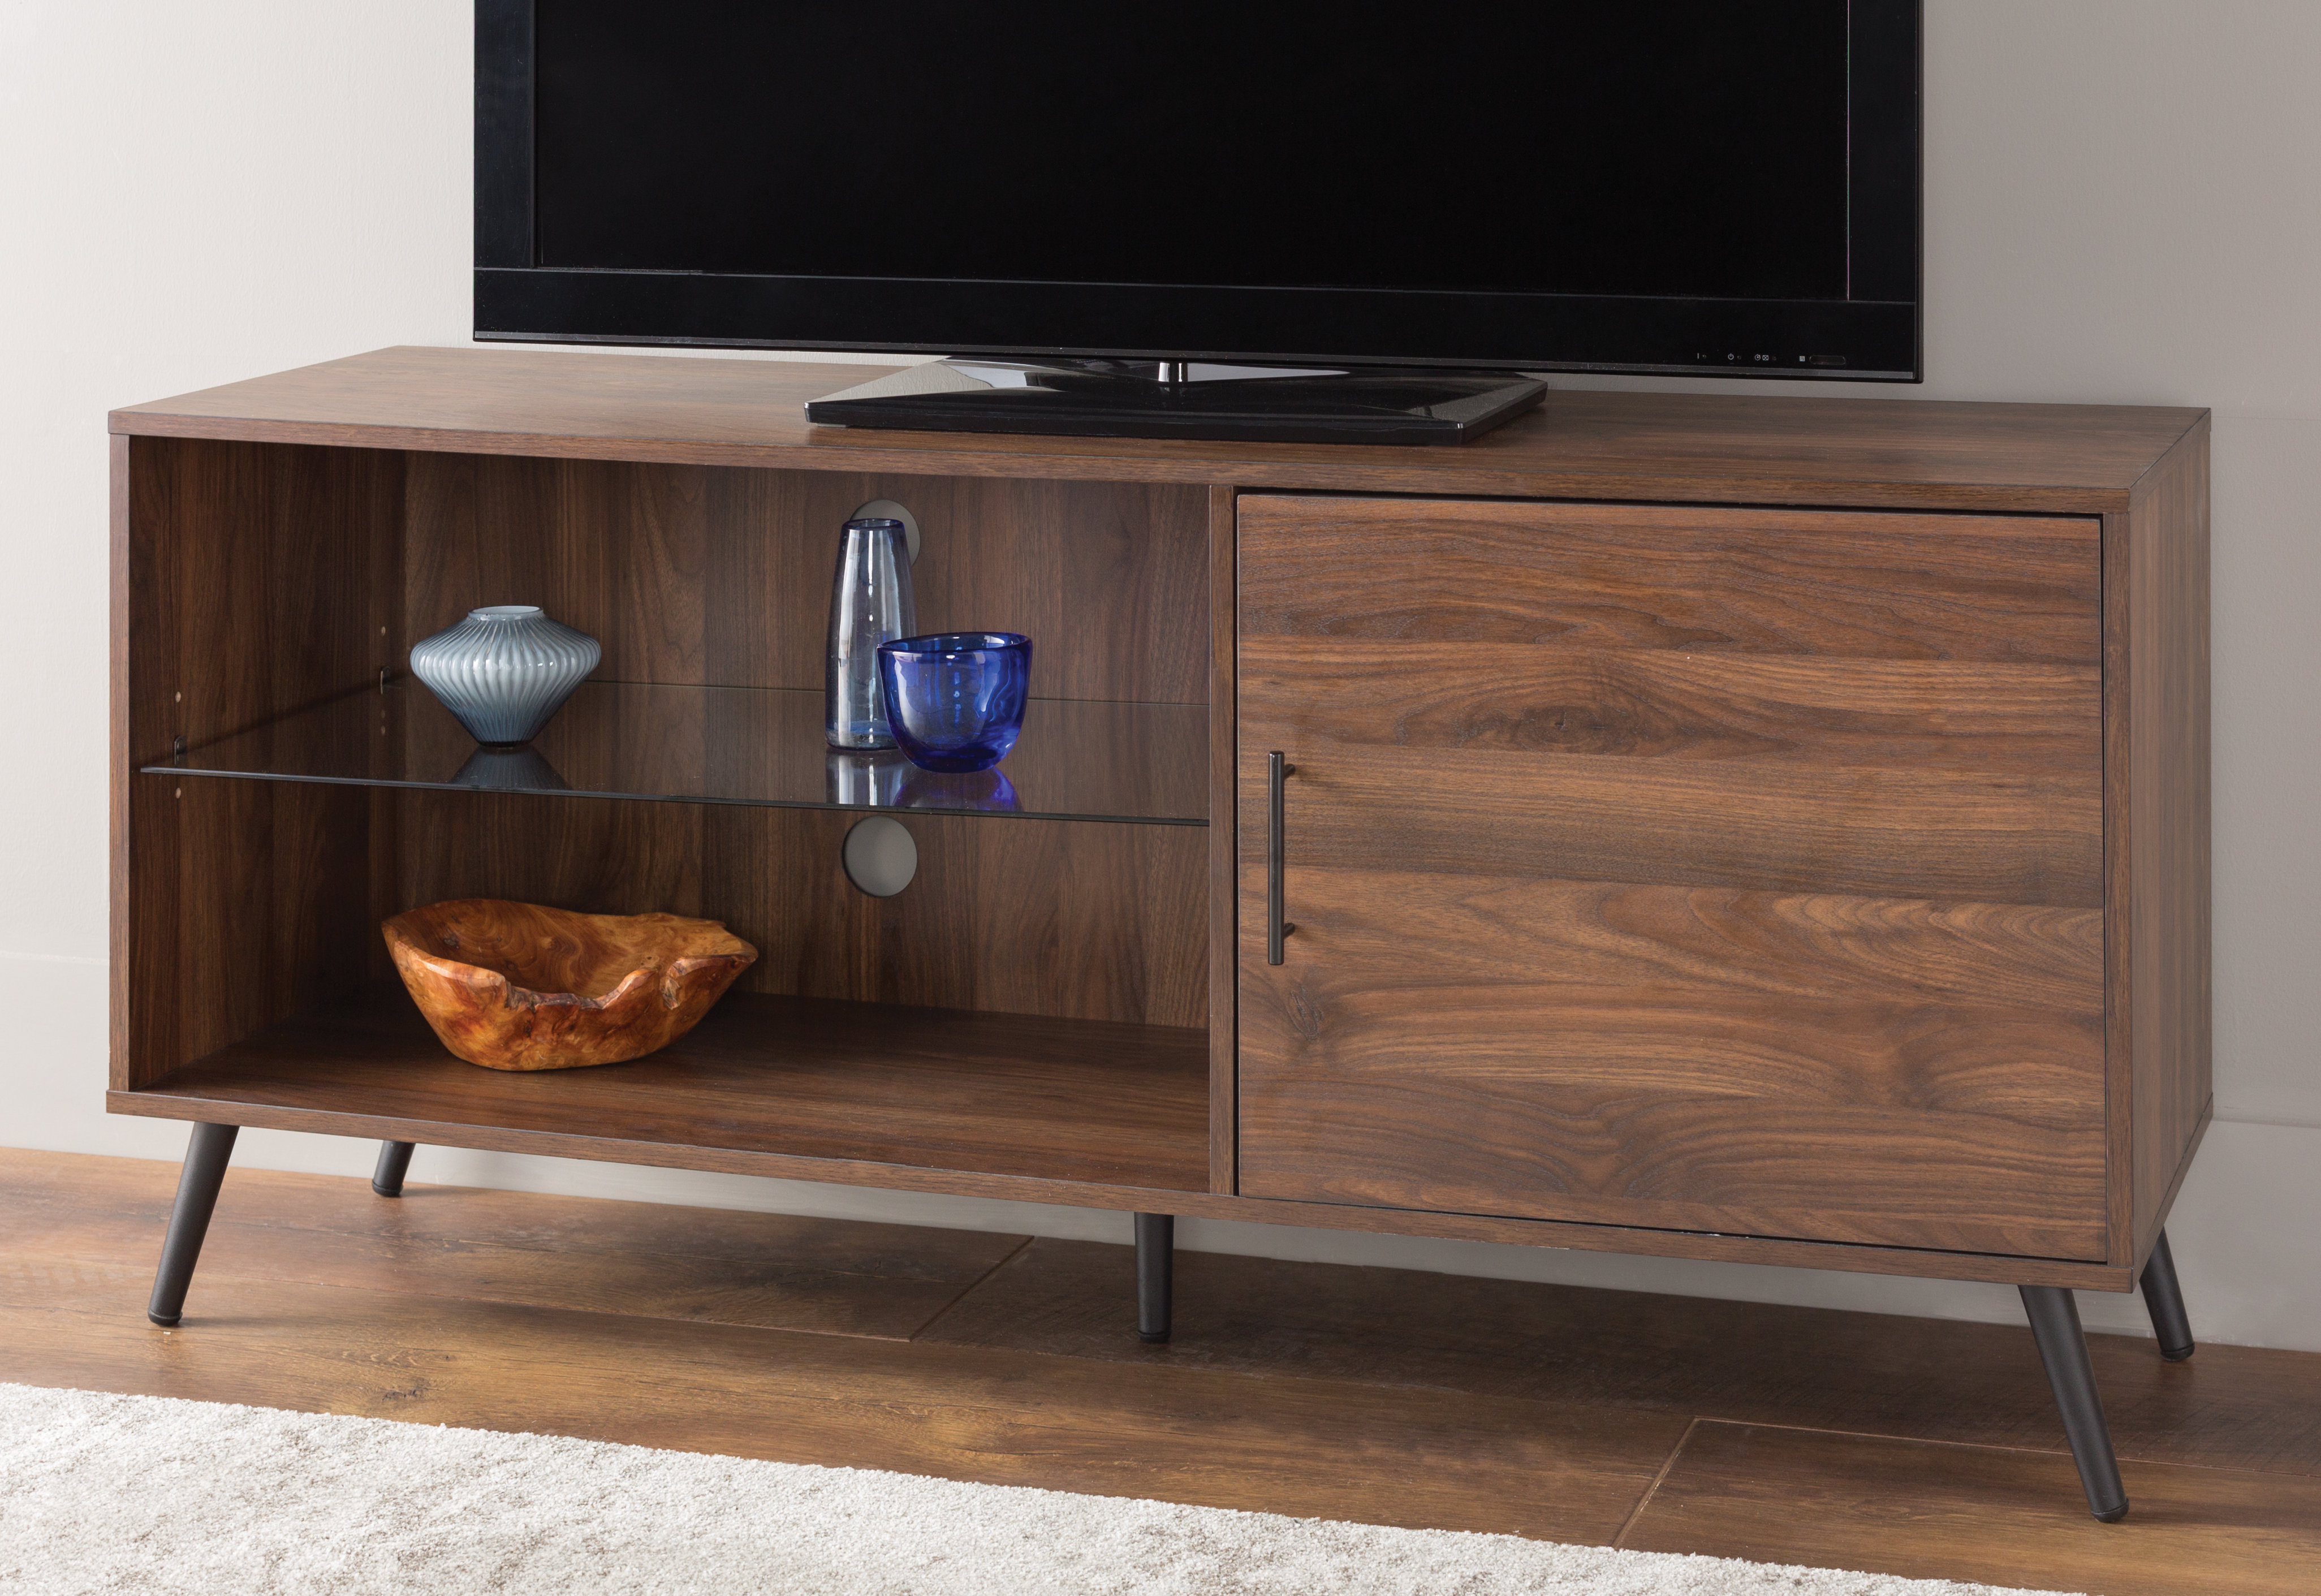 Wayfair Regarding Recent Iconic Tv Stands (View 18 of 20)